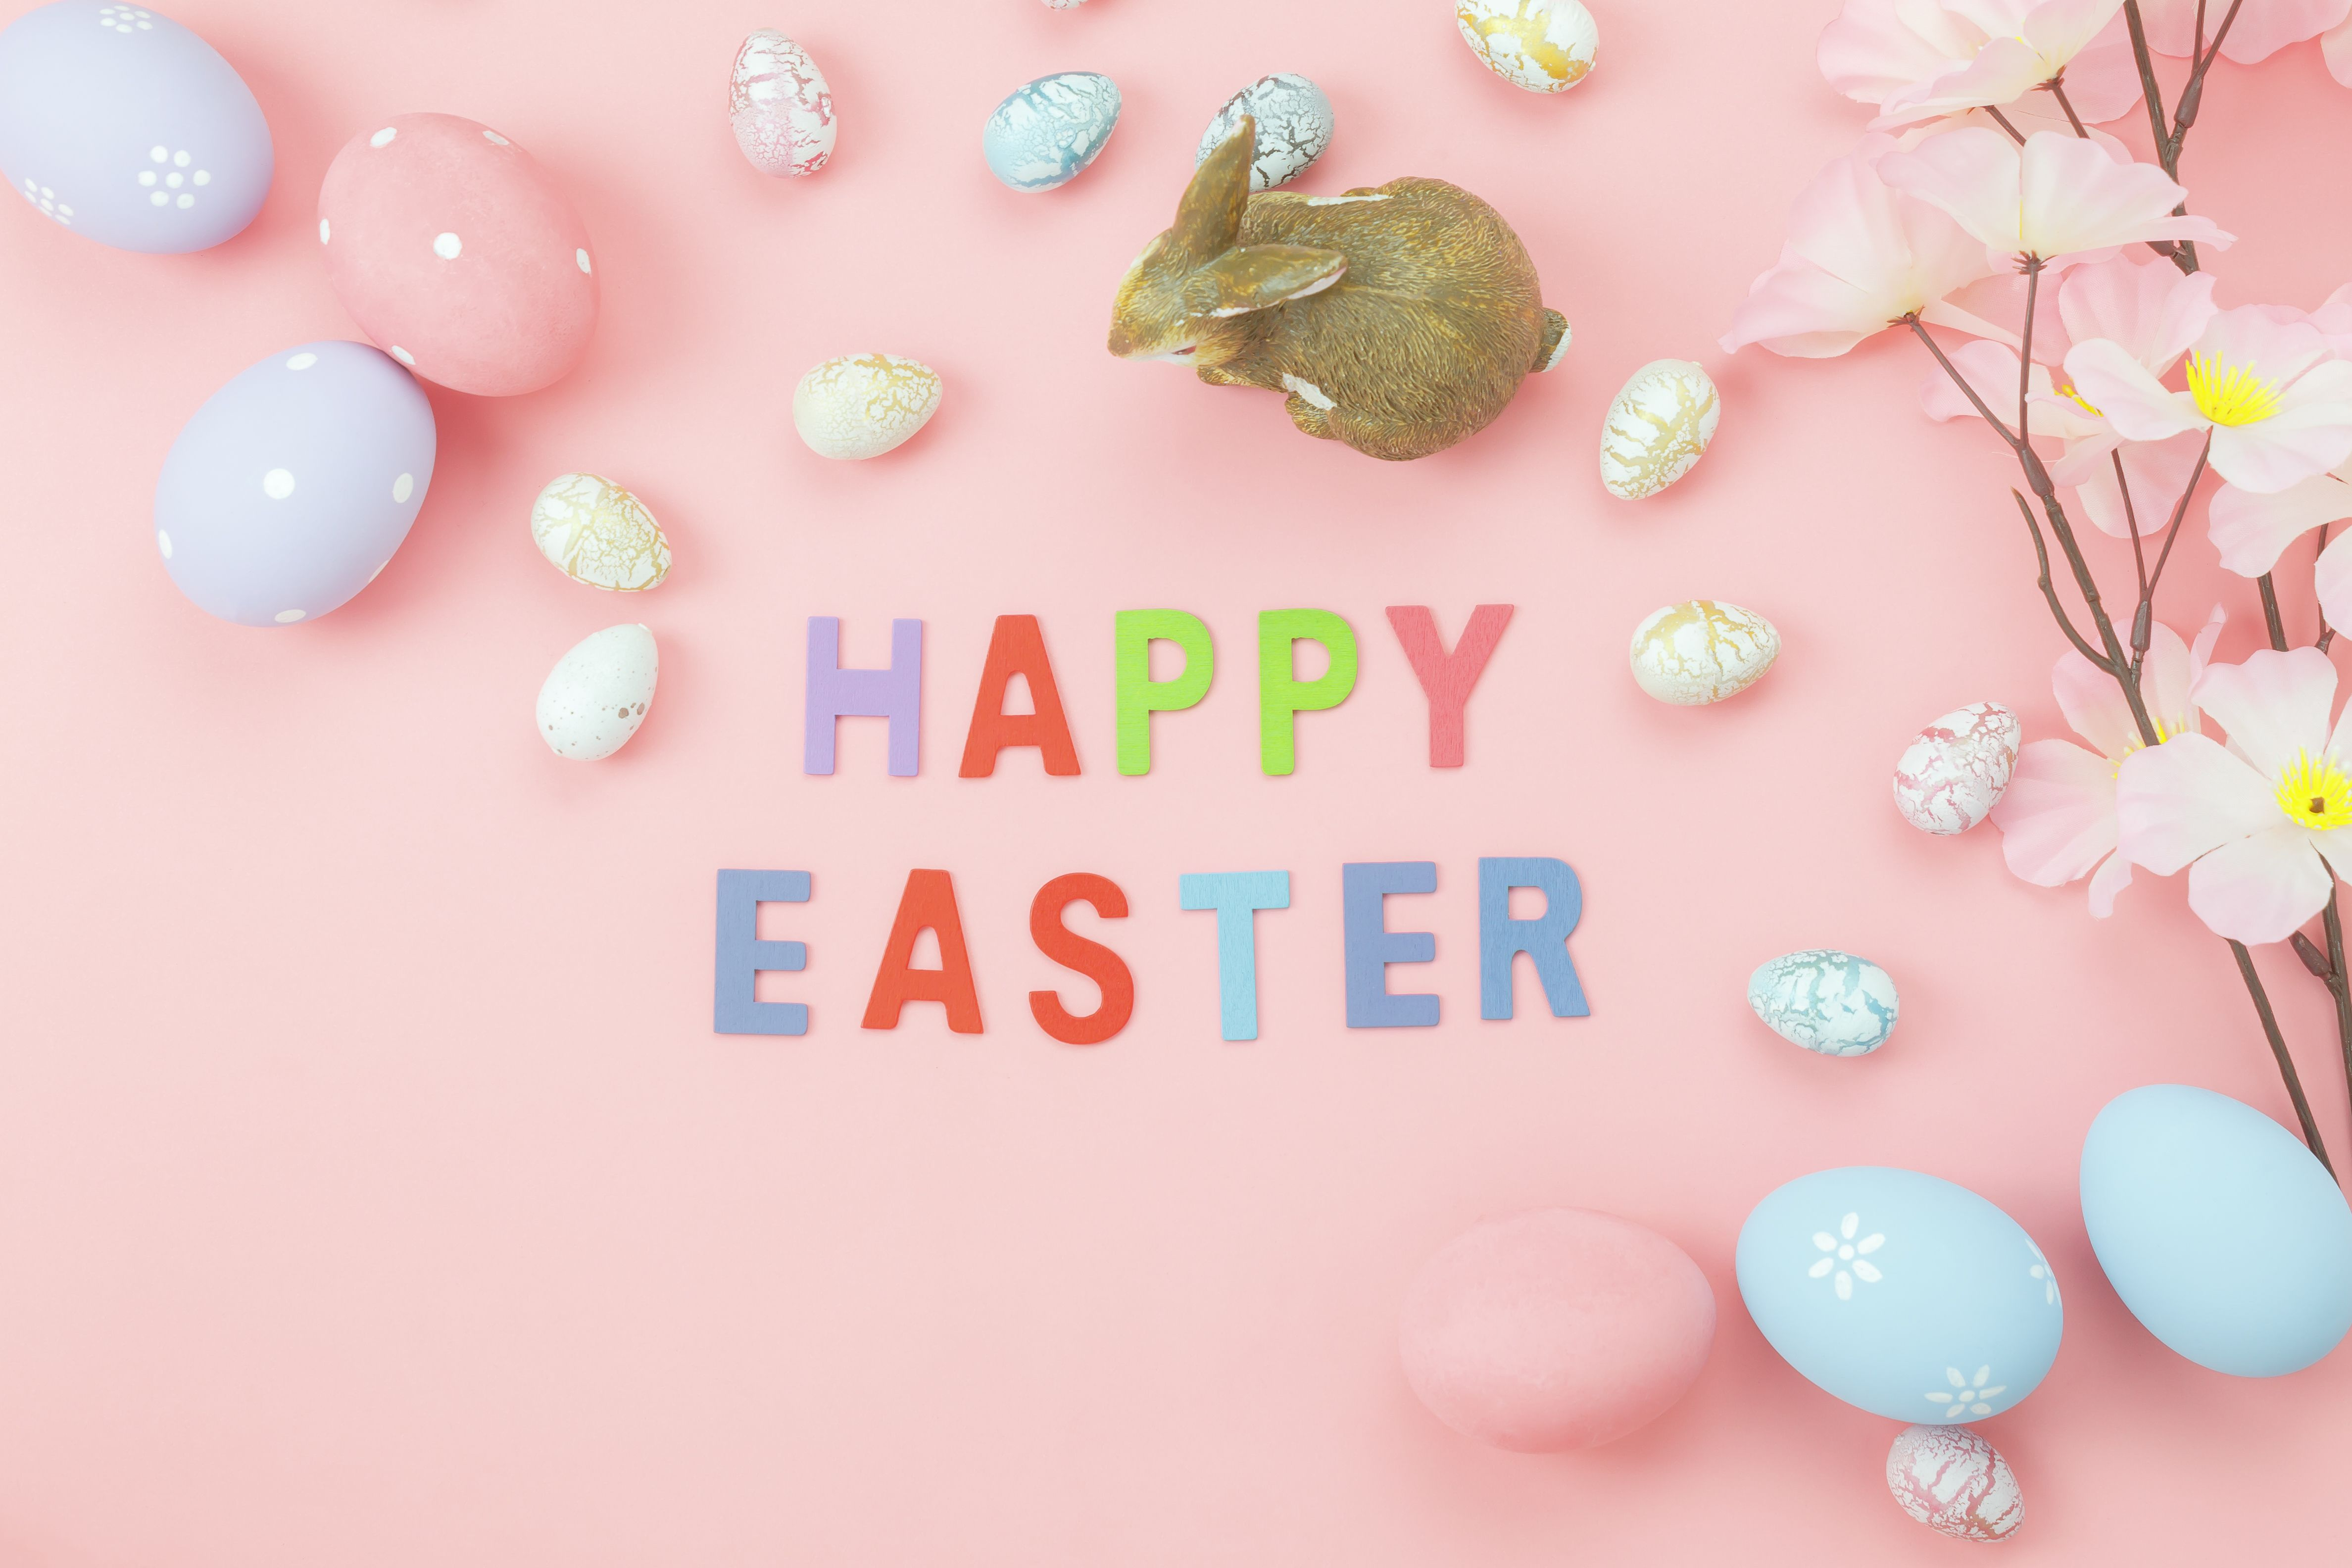 50 Best Easter Day Instagram Captions Cute And Funny Easter